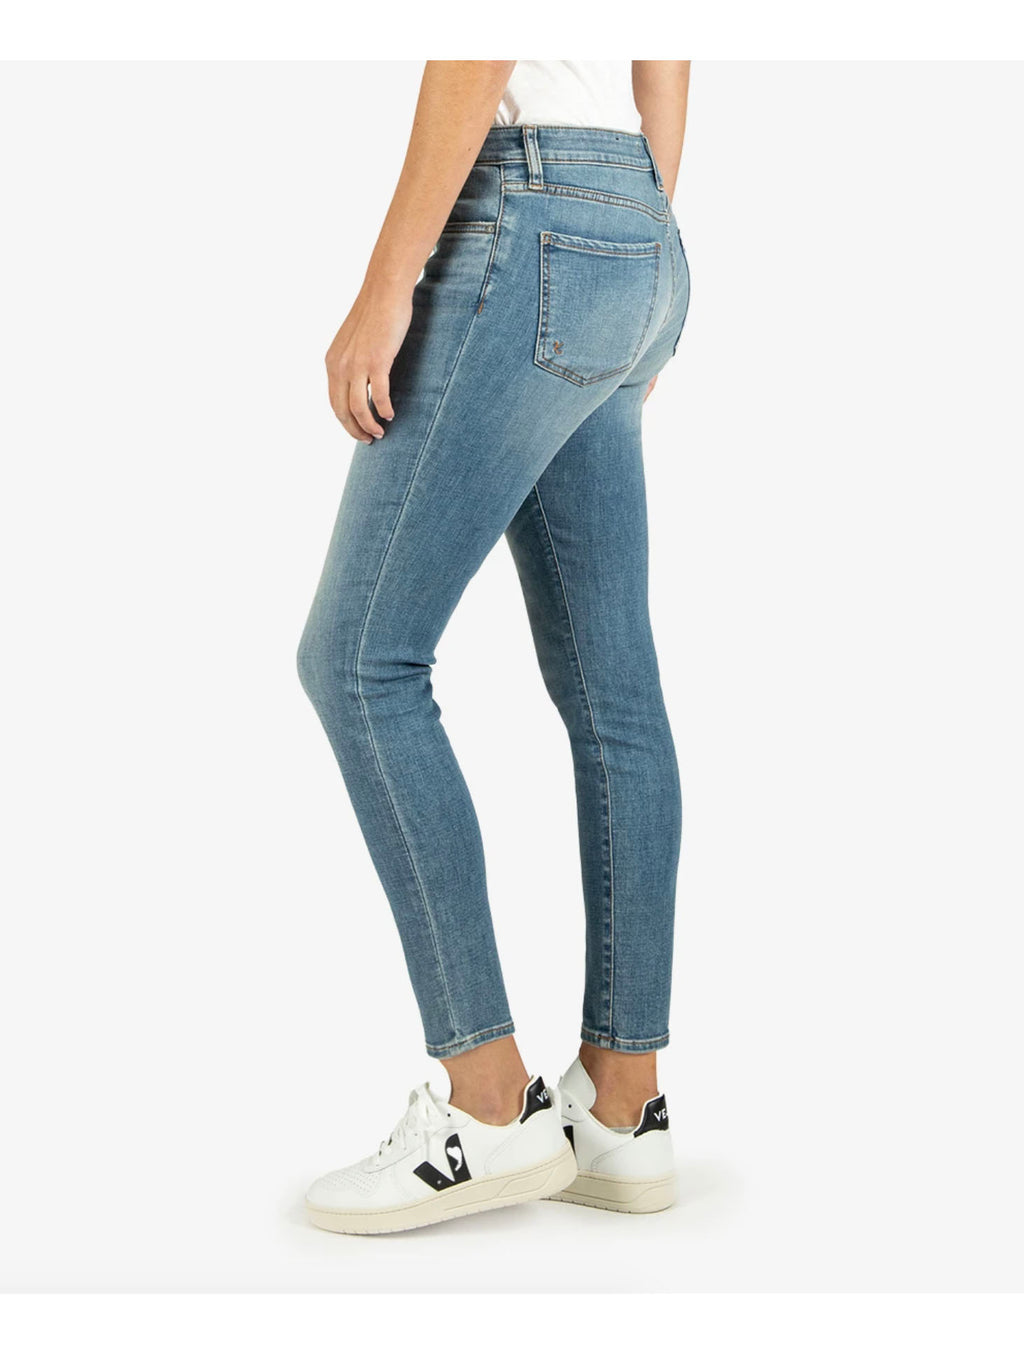 Kut from the Kloth Donna High Rise Ankle Skinny in Chances Wash